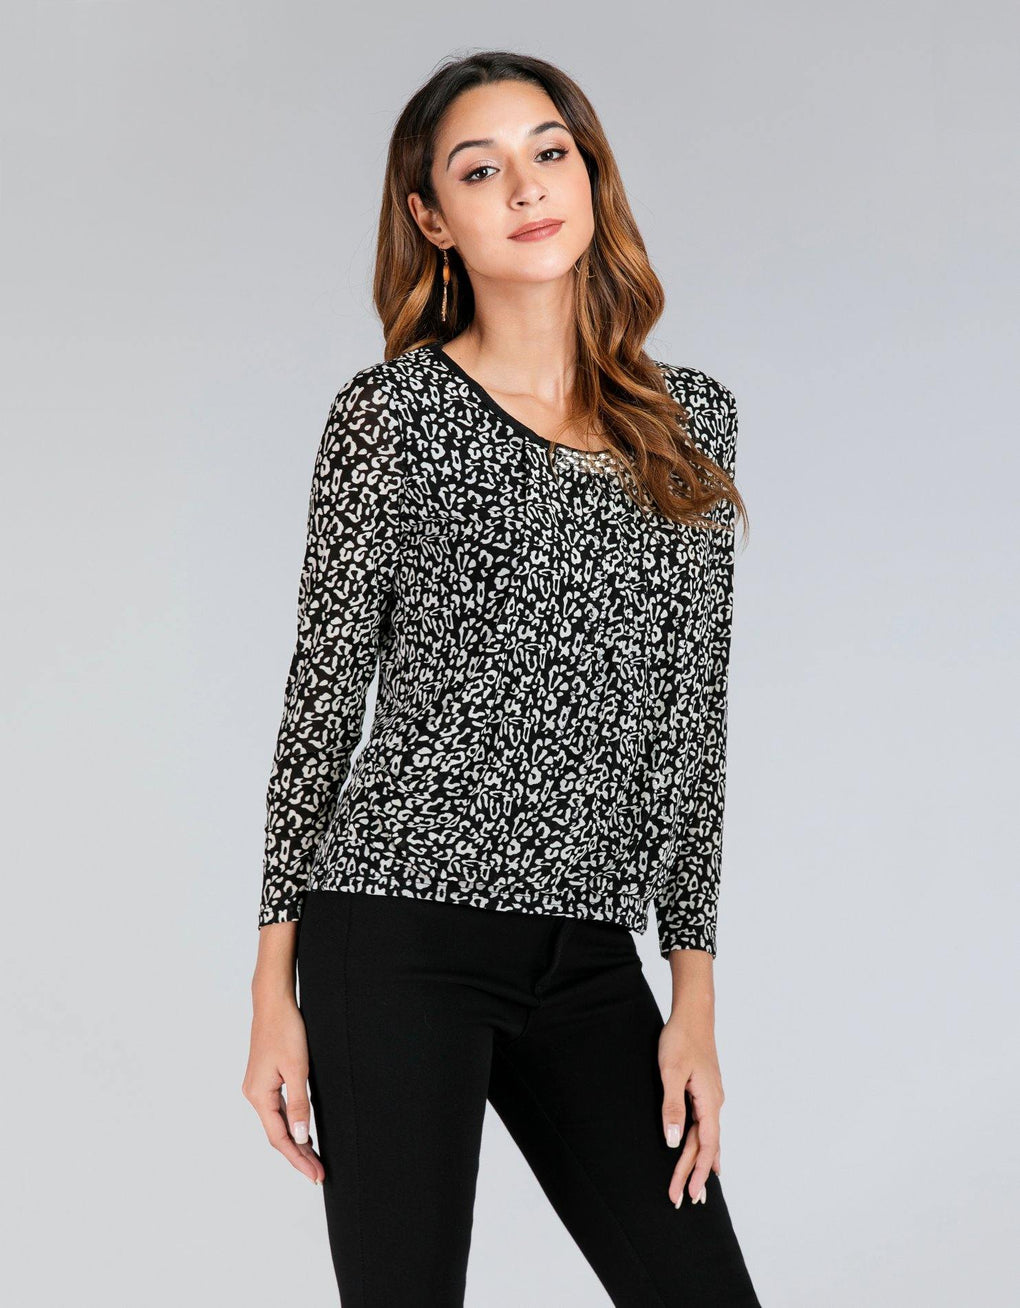 Cheetah Print Drape Top